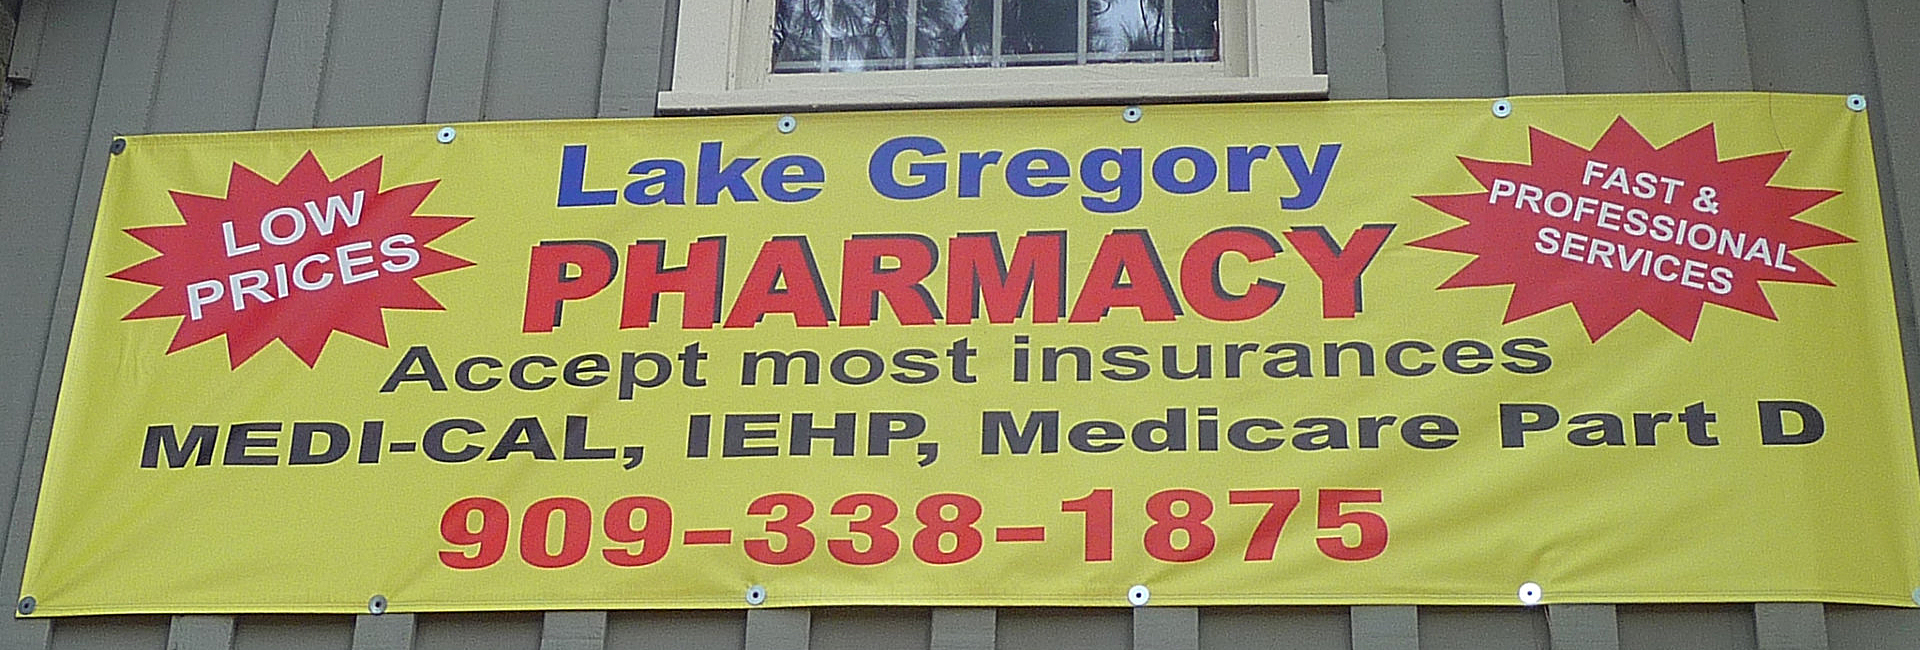 lake gregory pharmacy